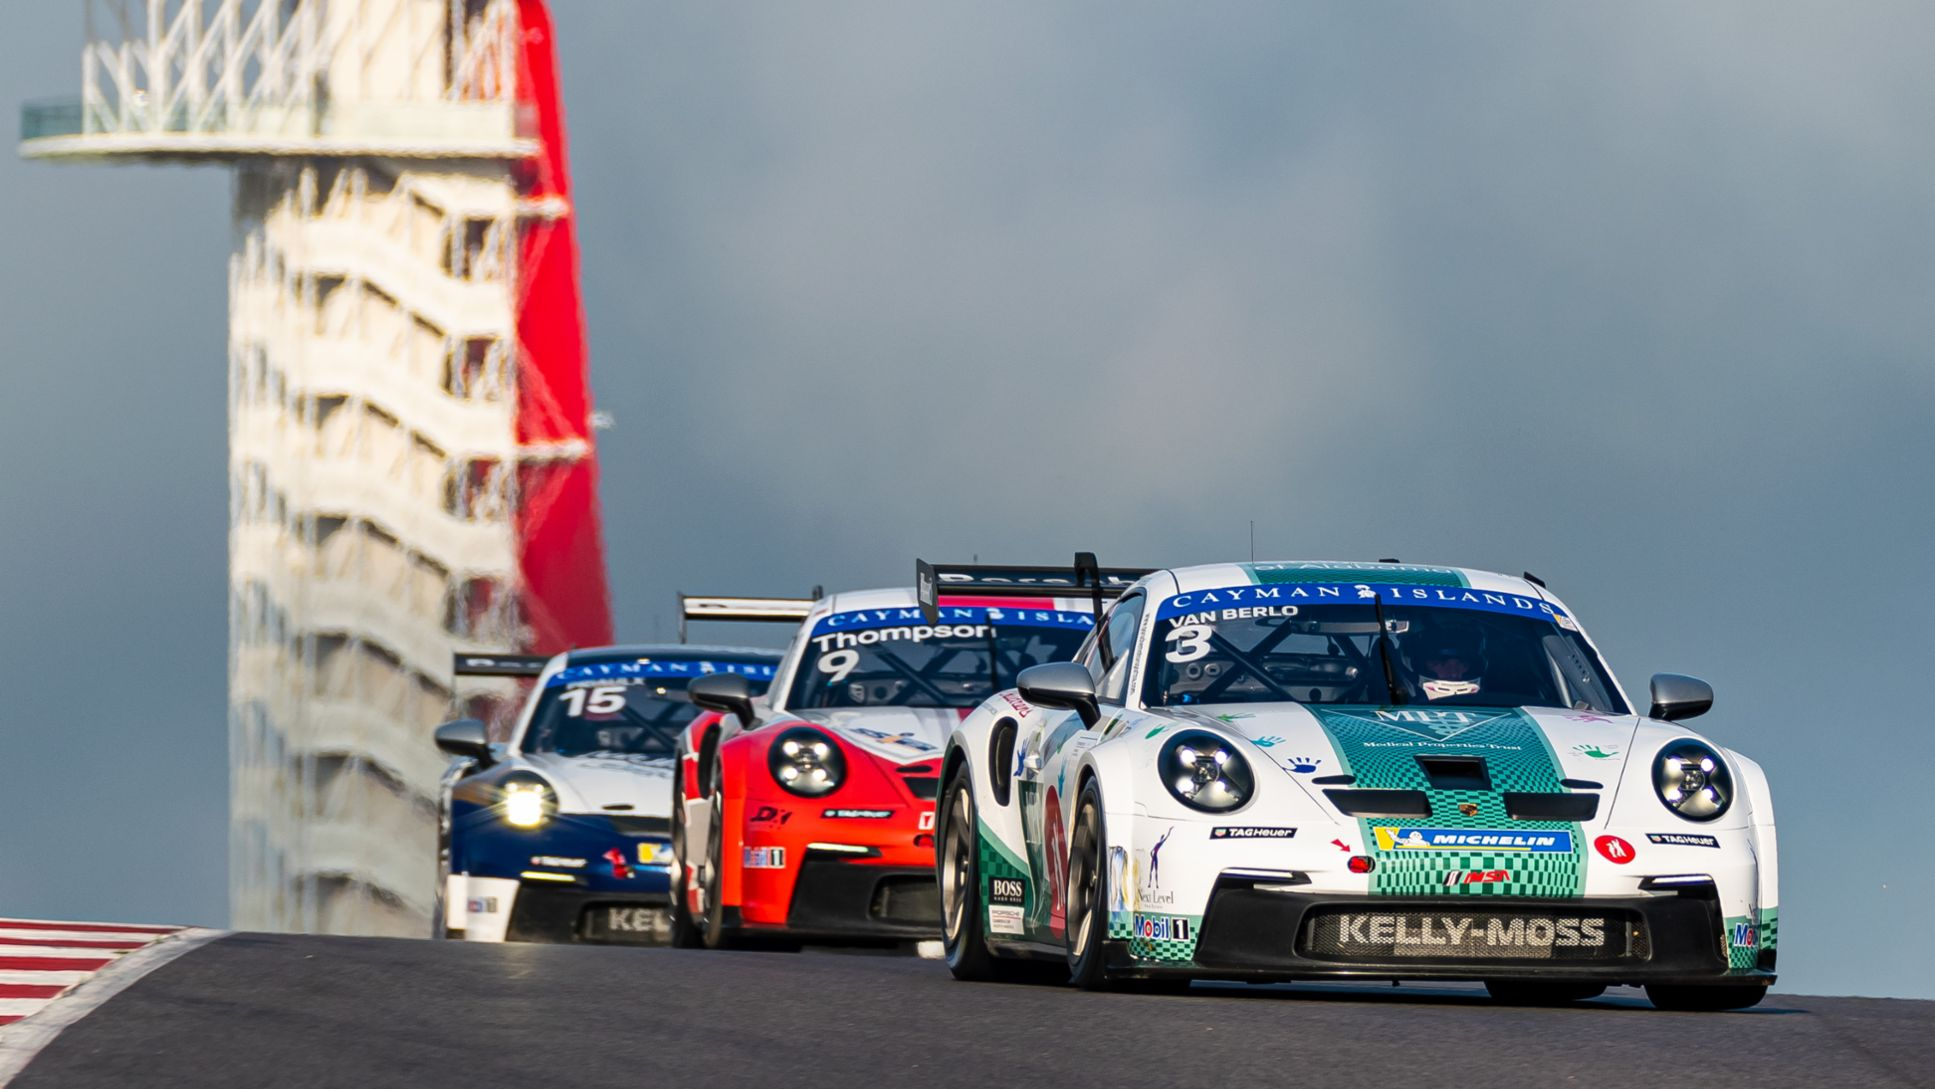 Porsche Carrera Cup North America Presented by the Cayman Islands - Race 1 - Kay van Berlo (Netherlands) leads Parker Thompson (Canada) and Seb Priaulx (UK), 911 GT3 Cup, COTA, Austin, 2021, PCNA